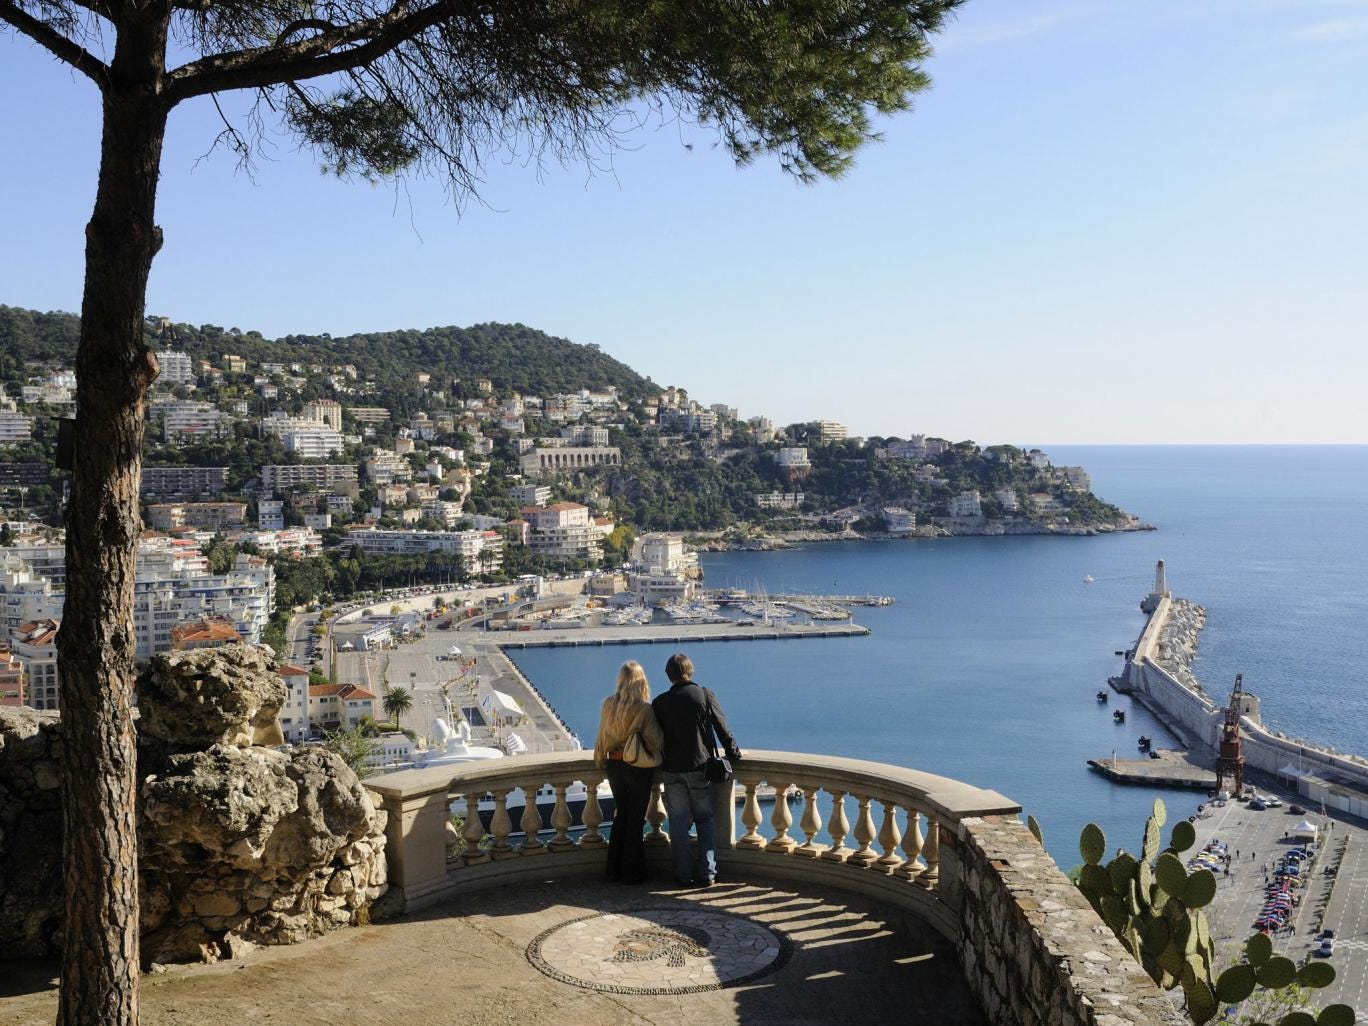 Bay watch: The view of Nice's harbour from the Colline du Château